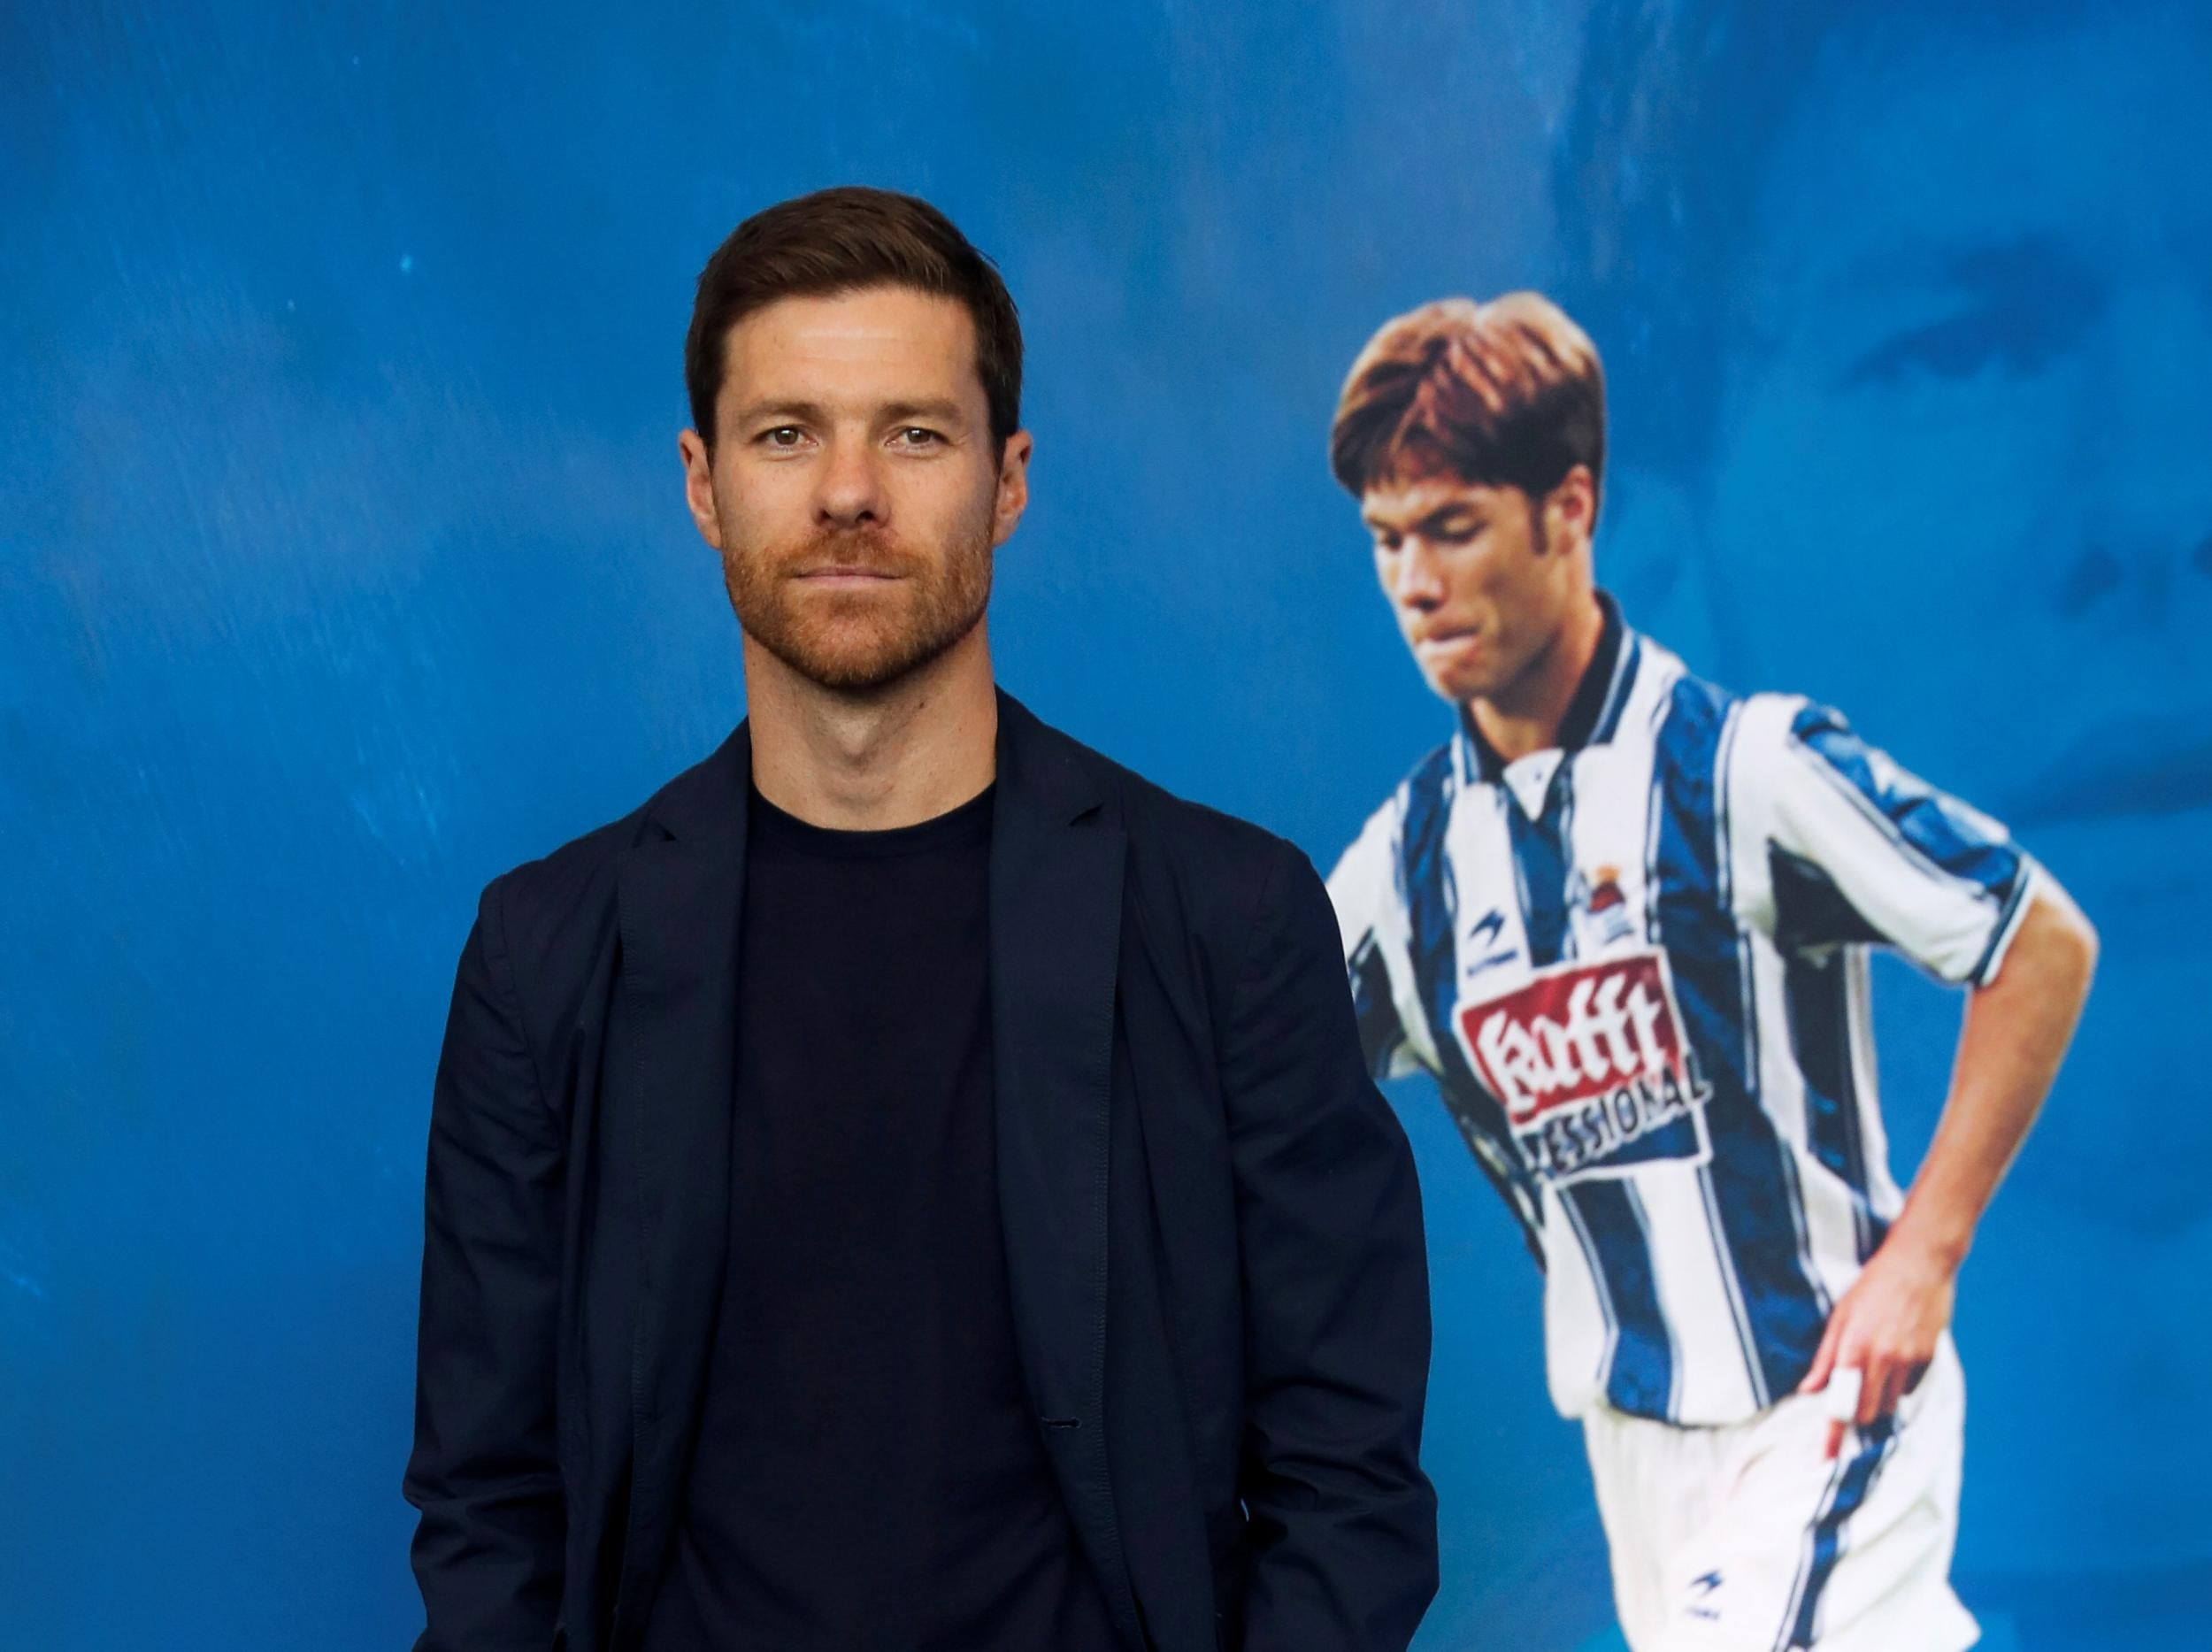 Xabi Alonso takes the next step in his carefully planned career